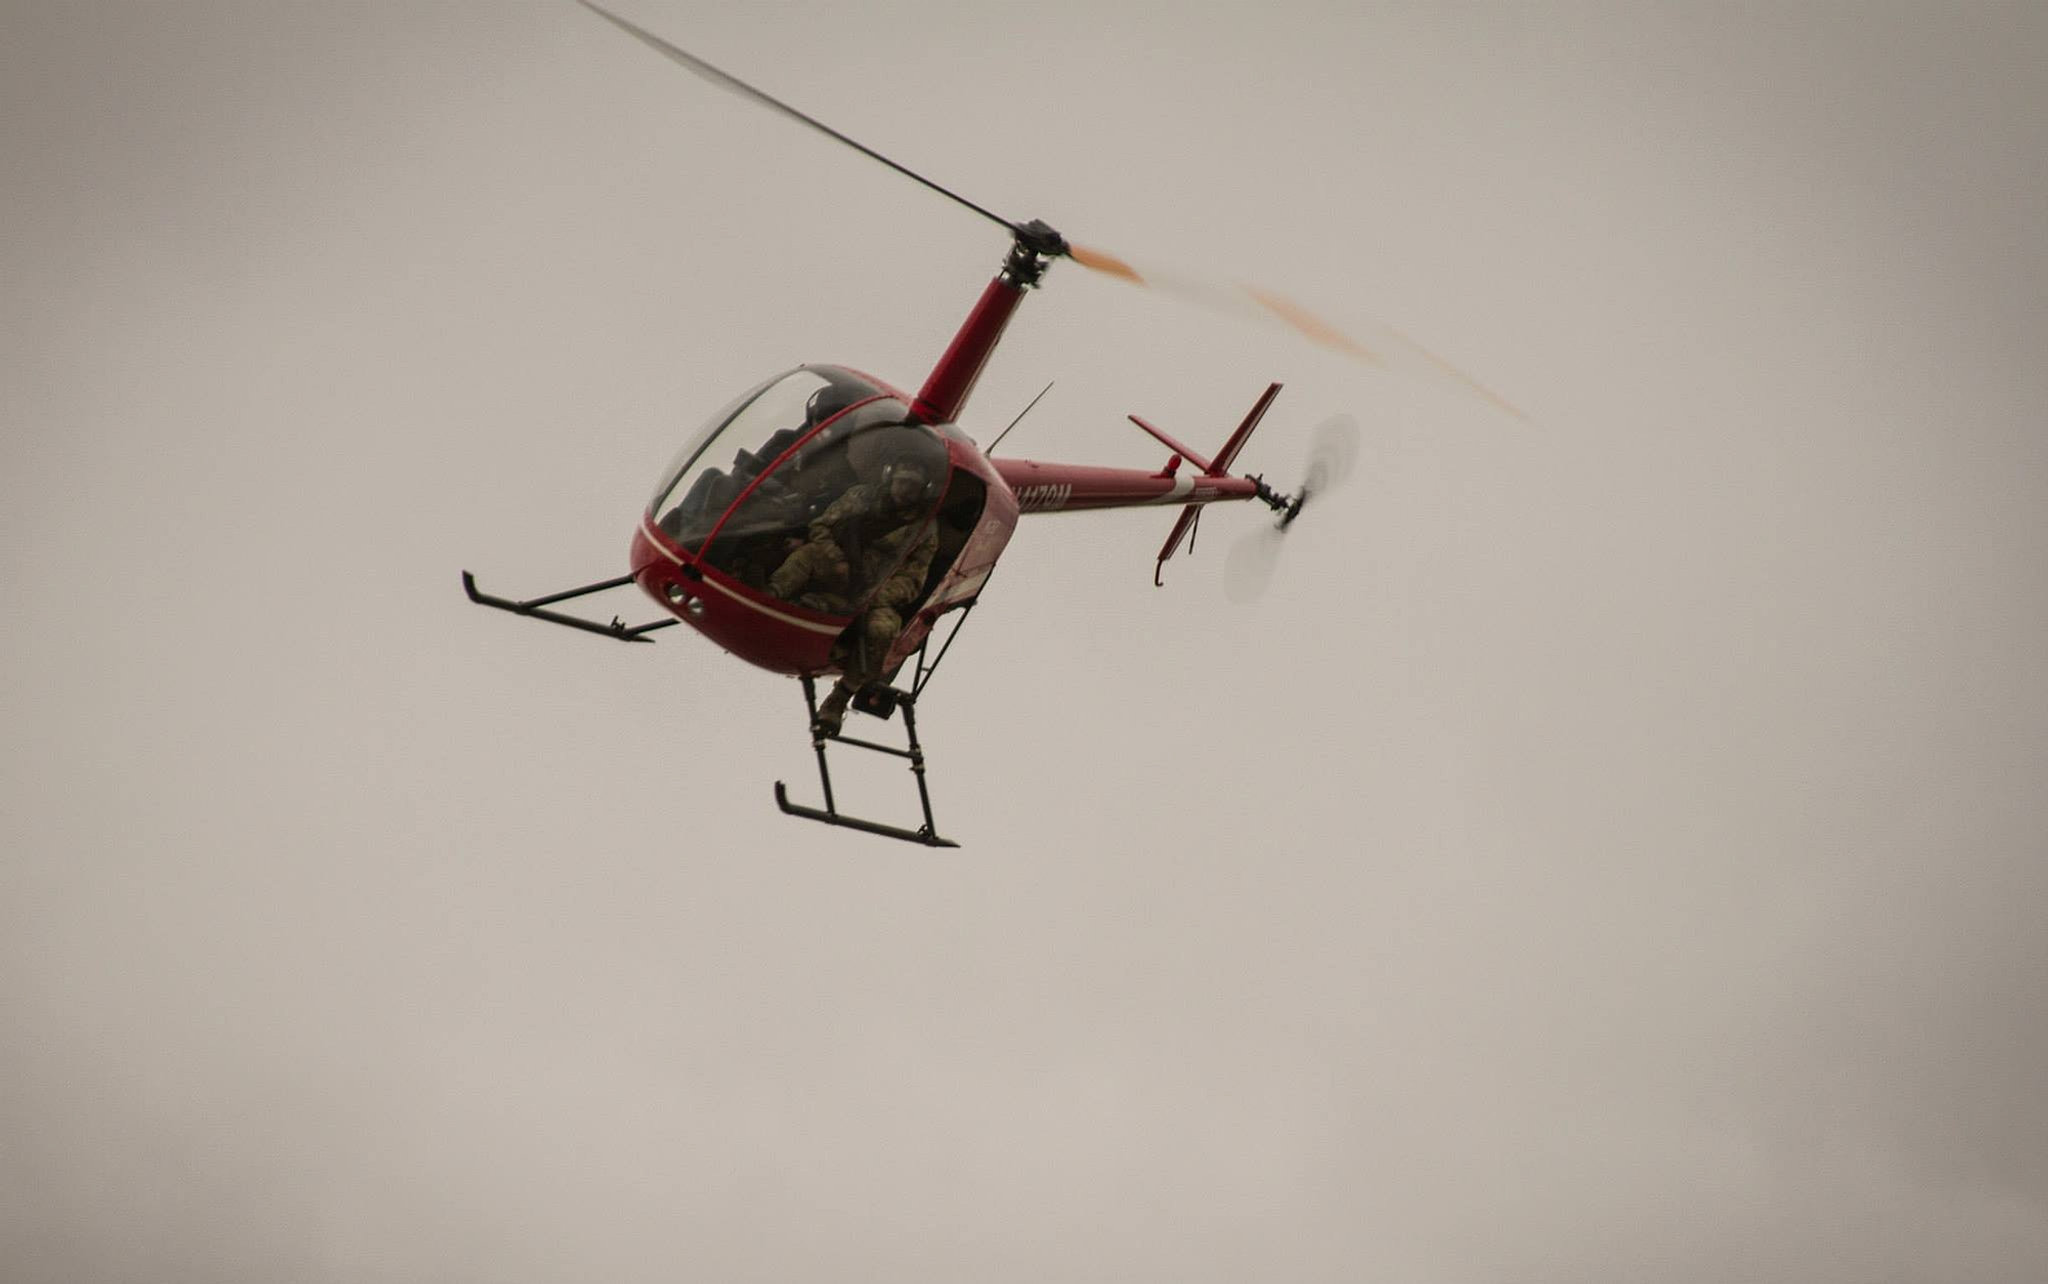 hog hunting texas helicopter with Dataitem Iixu2rfi2 on Watch likewise Feral Hogs Root Familys Farm as well Texas Hog Hunting additionally 493566440389995427 likewise Helicopter Predator Control Hunt.